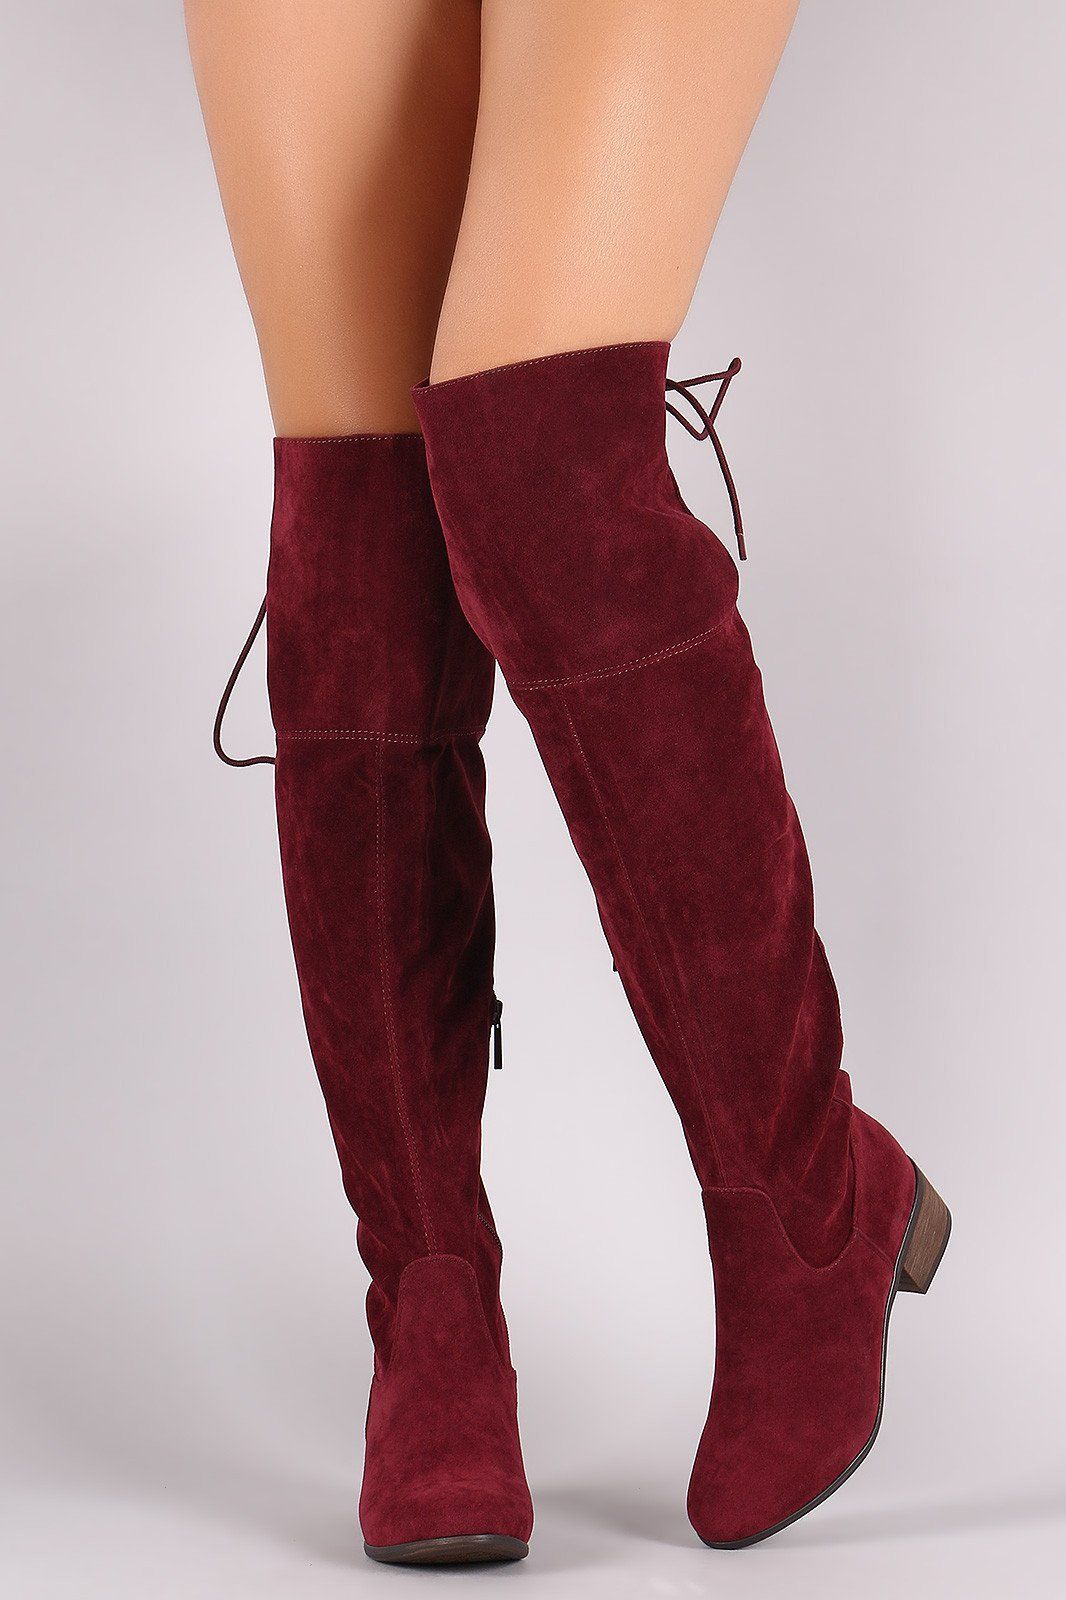 35bf3ba617a Breckelle Vegan Suede Lace Up Back Over The Knee Boots